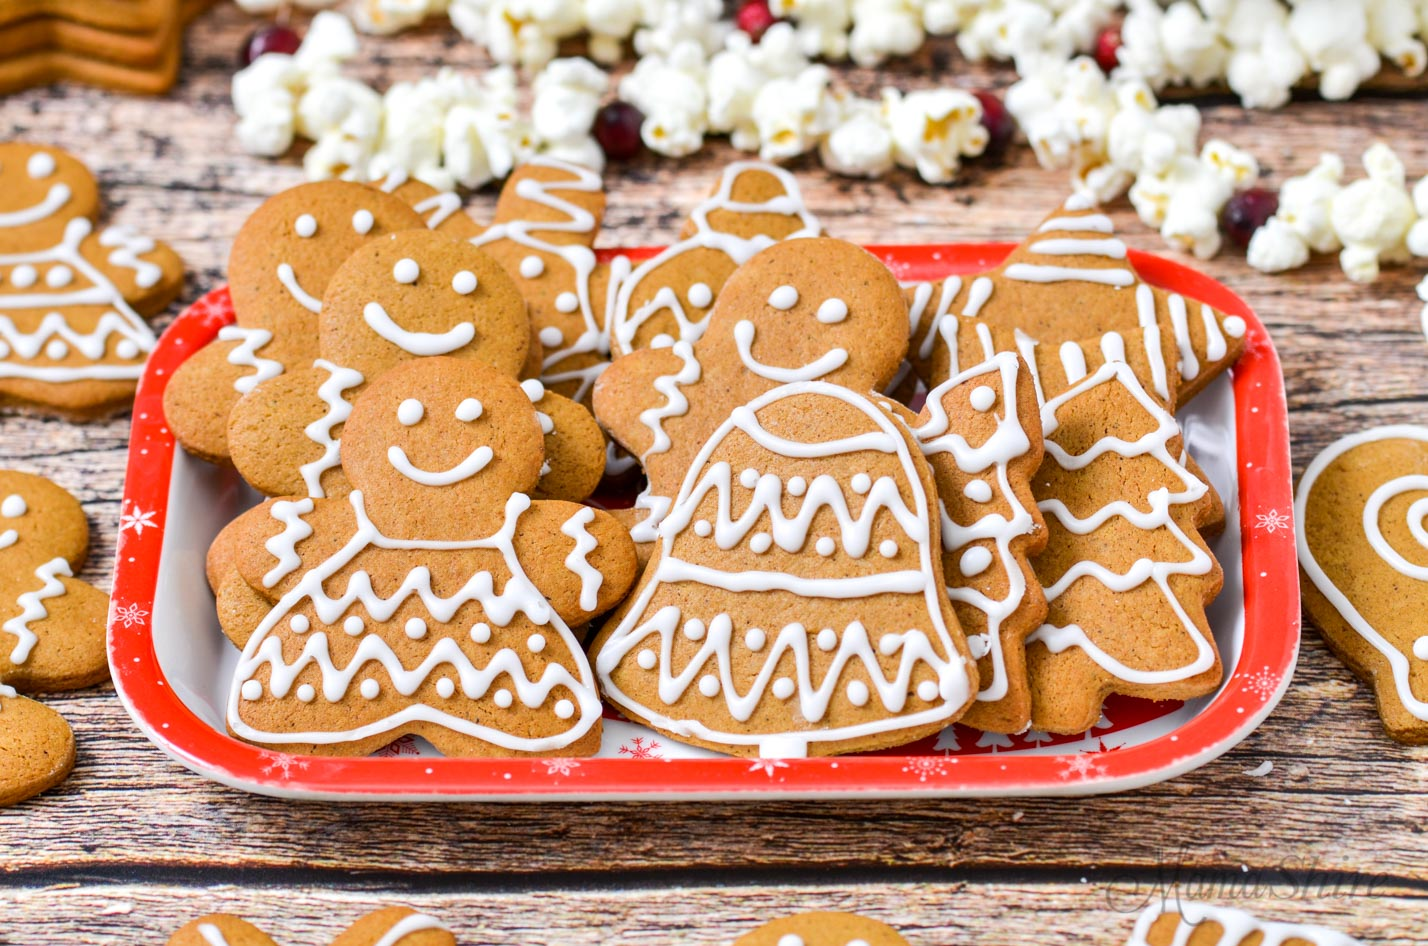 A tray of Christmas Cookies - gingerbread cookies.